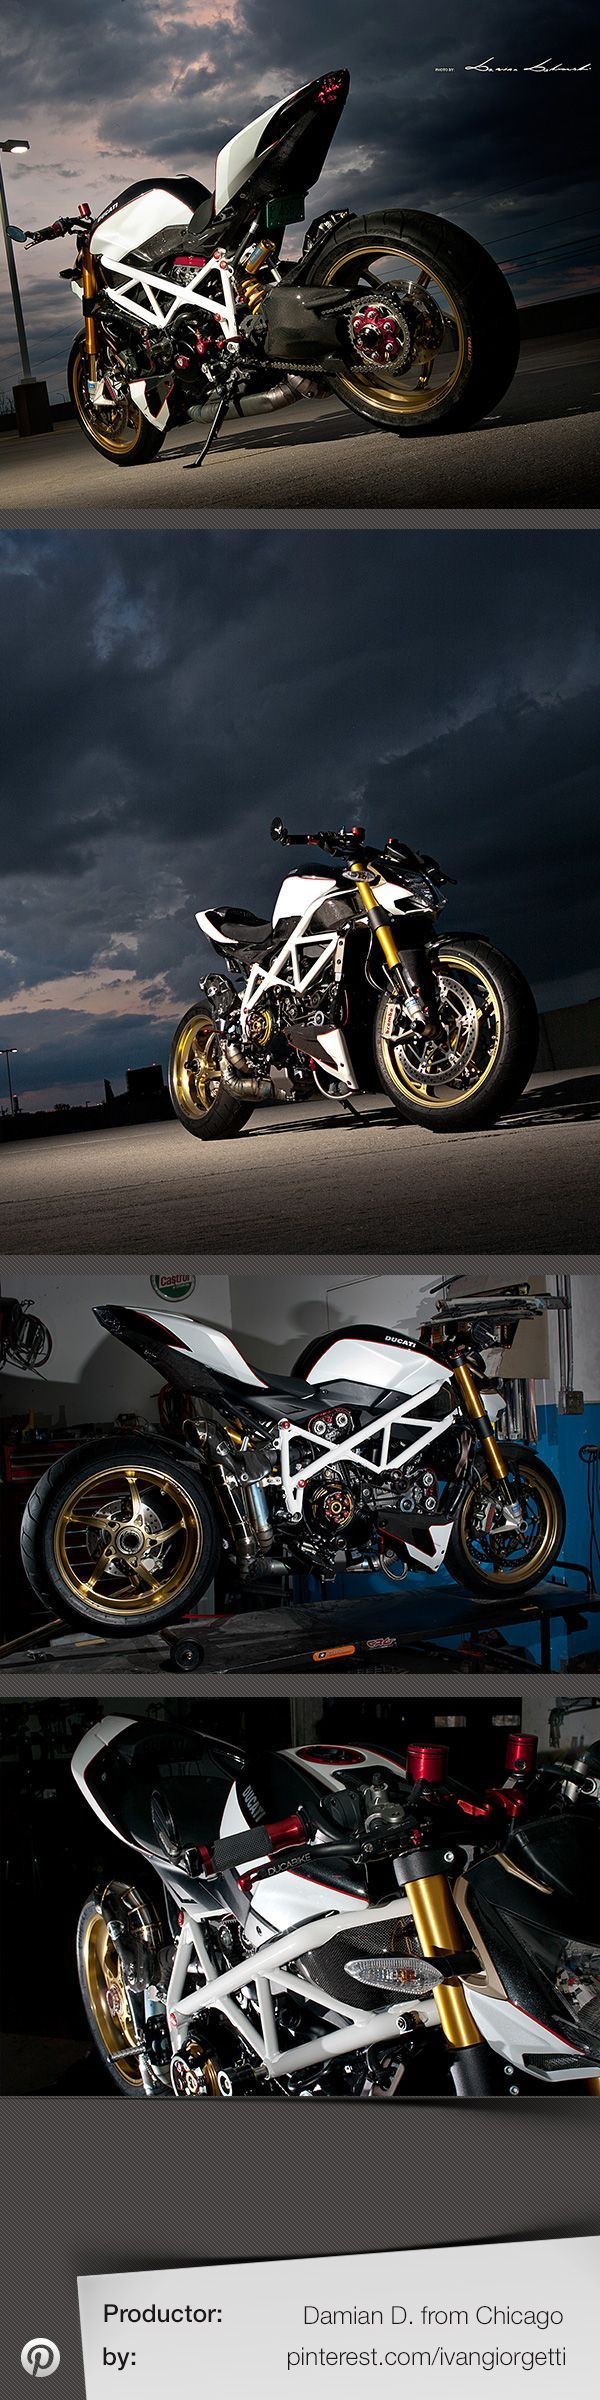 Ducati Streetfighter S by Damian D. from Chicago